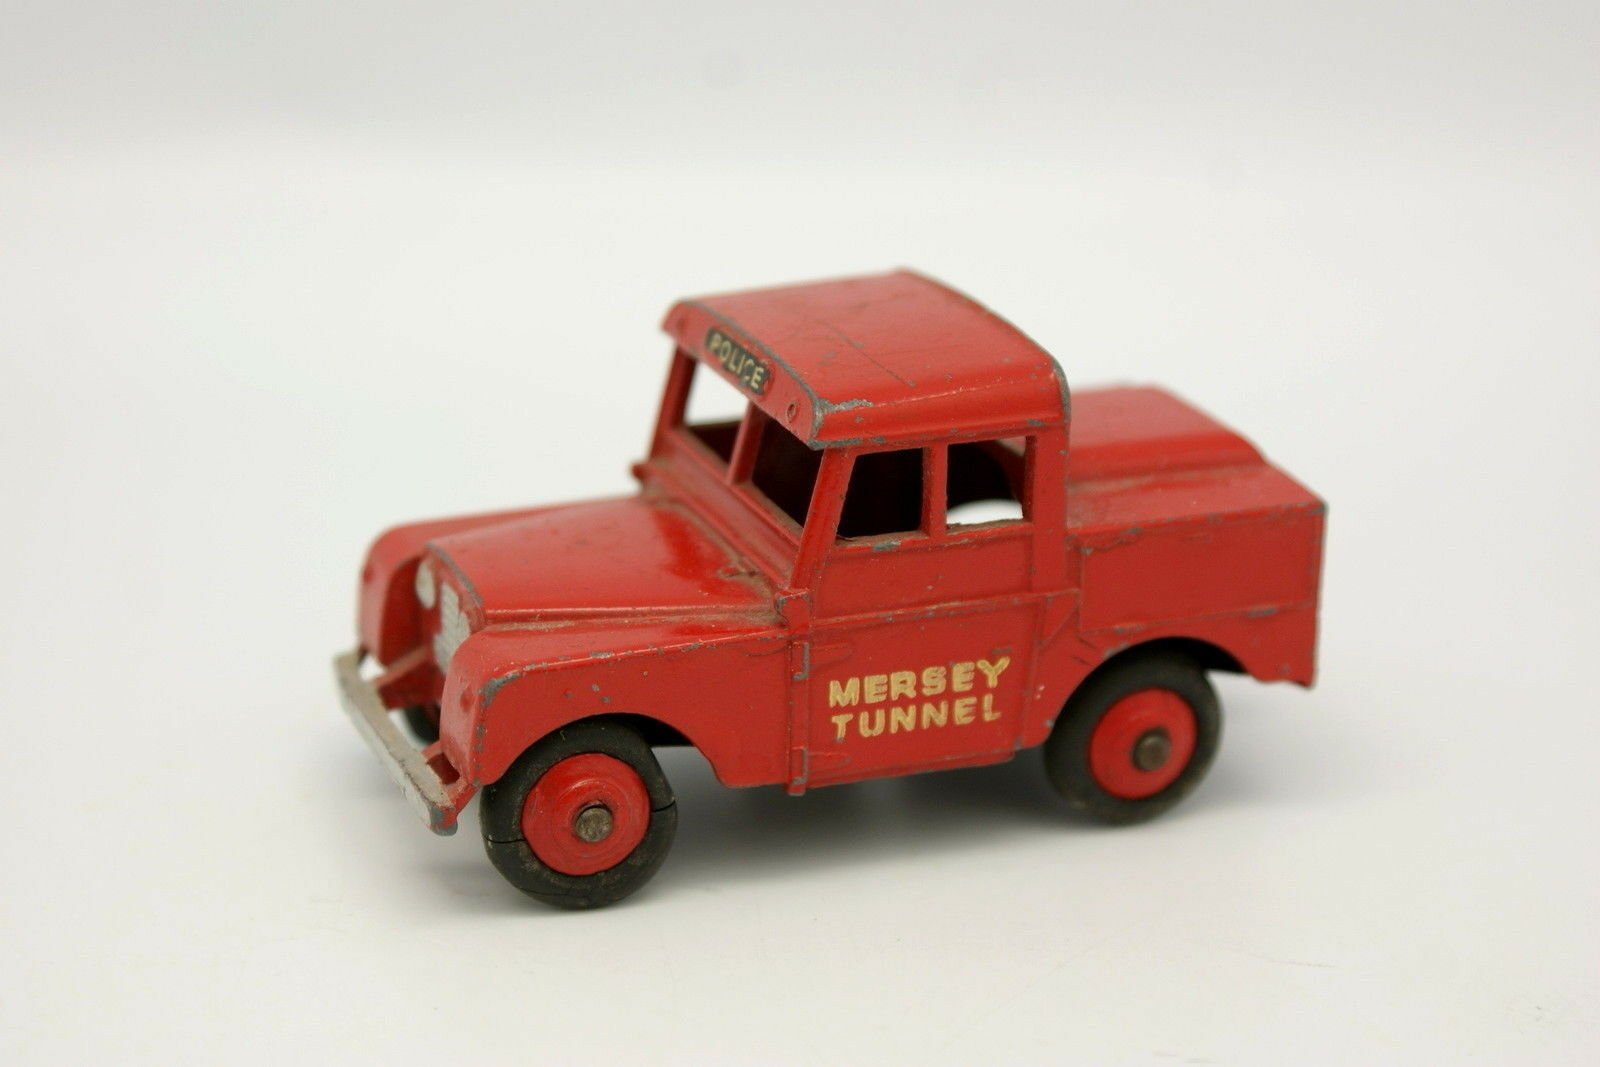 Dinky Toys GB 1 43 - Land Rover 88 88 88 Polizia Mersey Tunnel 1be9e7